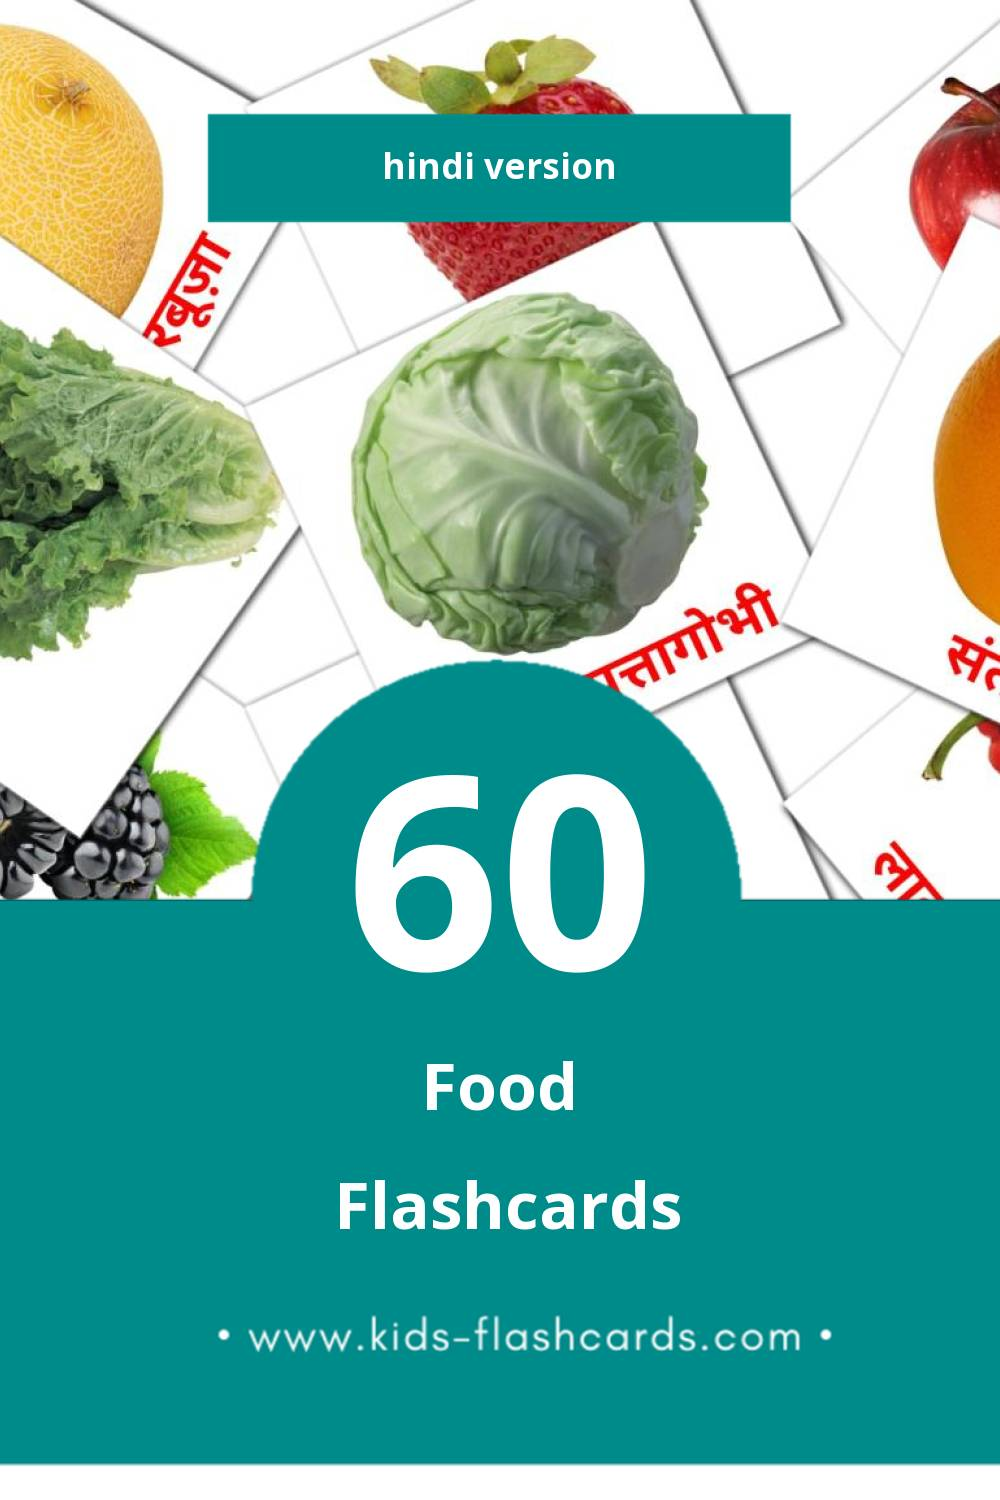 Visual खाना Flashcards for Toddlers (49 cards in Hindi)